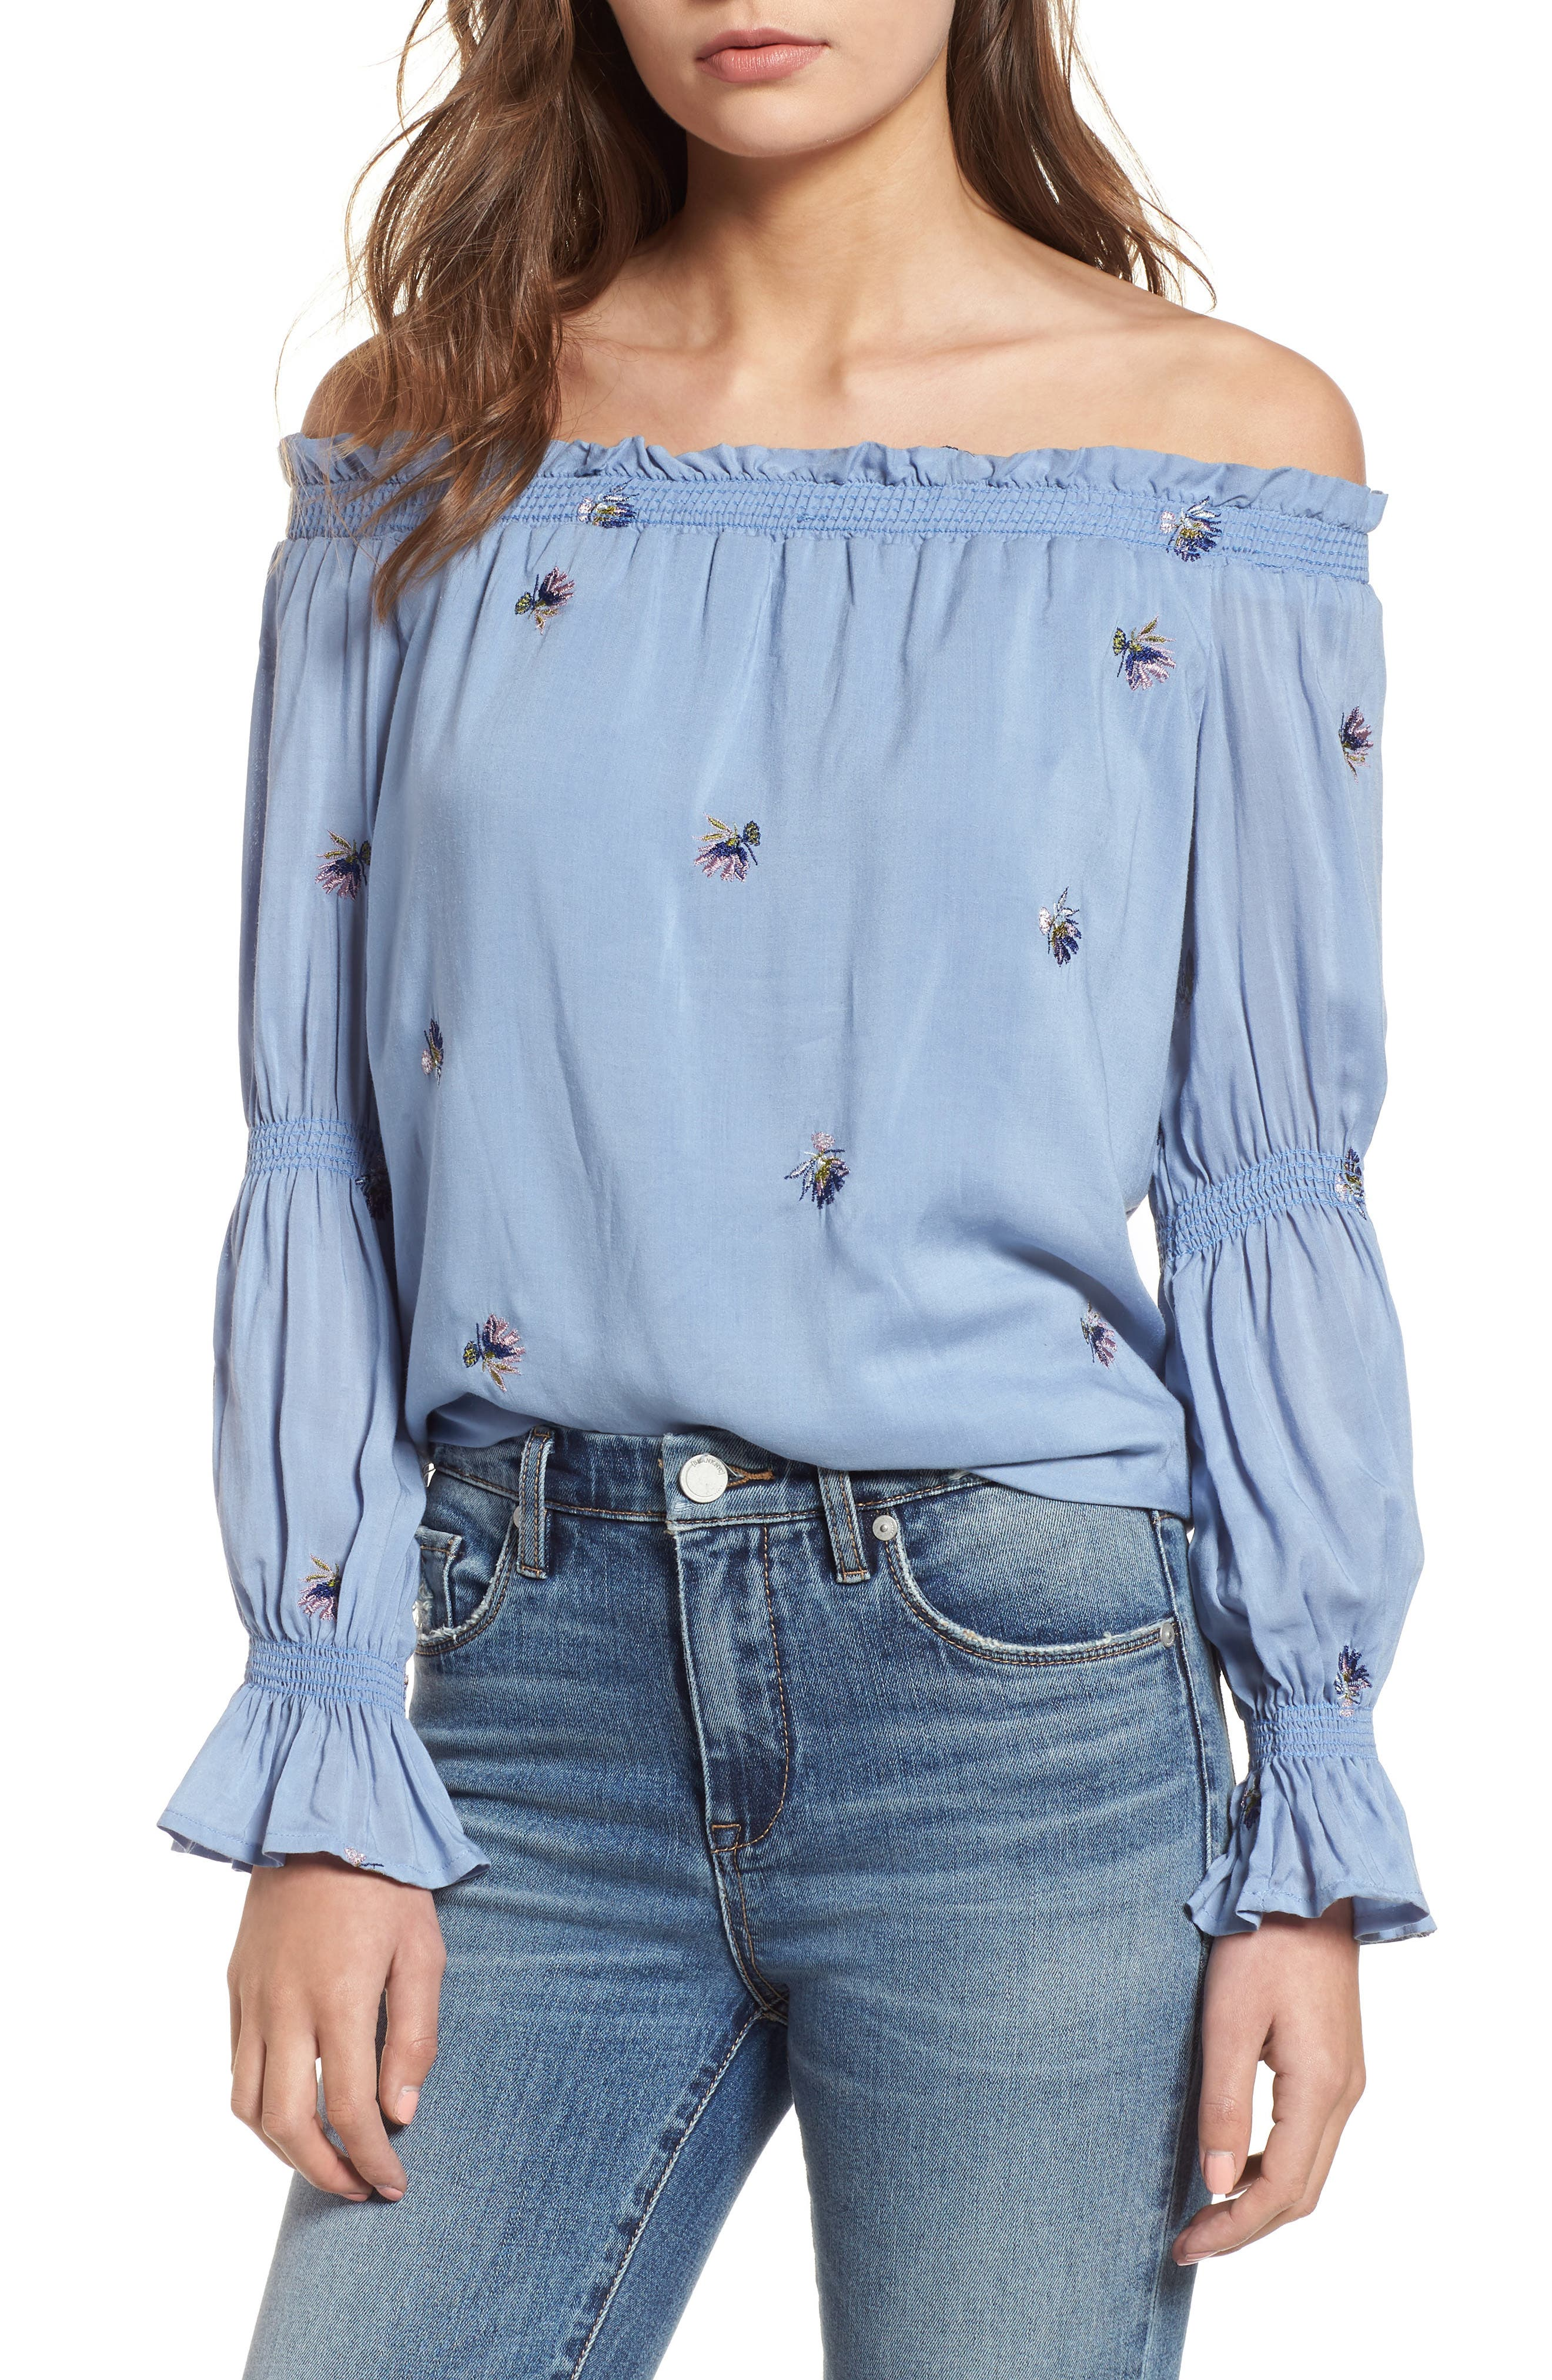 Rimini Off the Shoulder Top,                         Main,                         color, Chambray Blue Embroidery